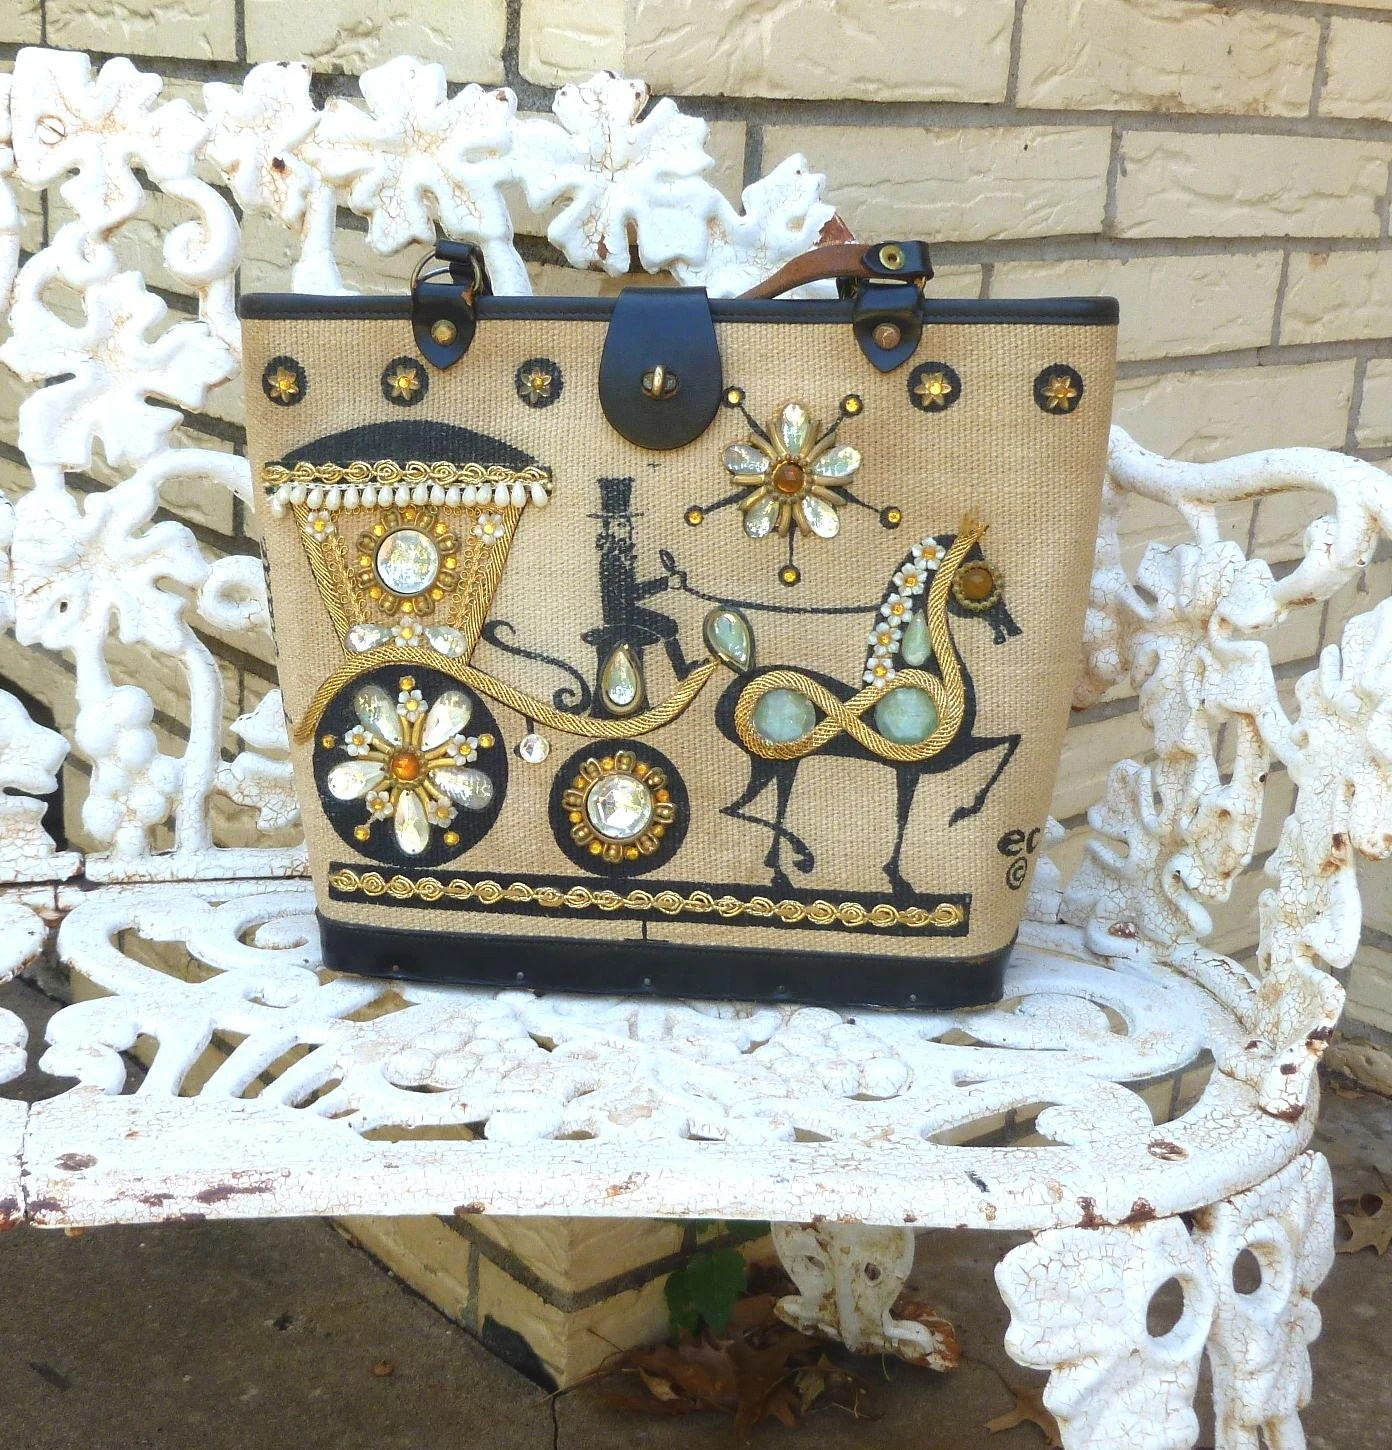 Enid Collins Jeweled Carriage Trade Purse